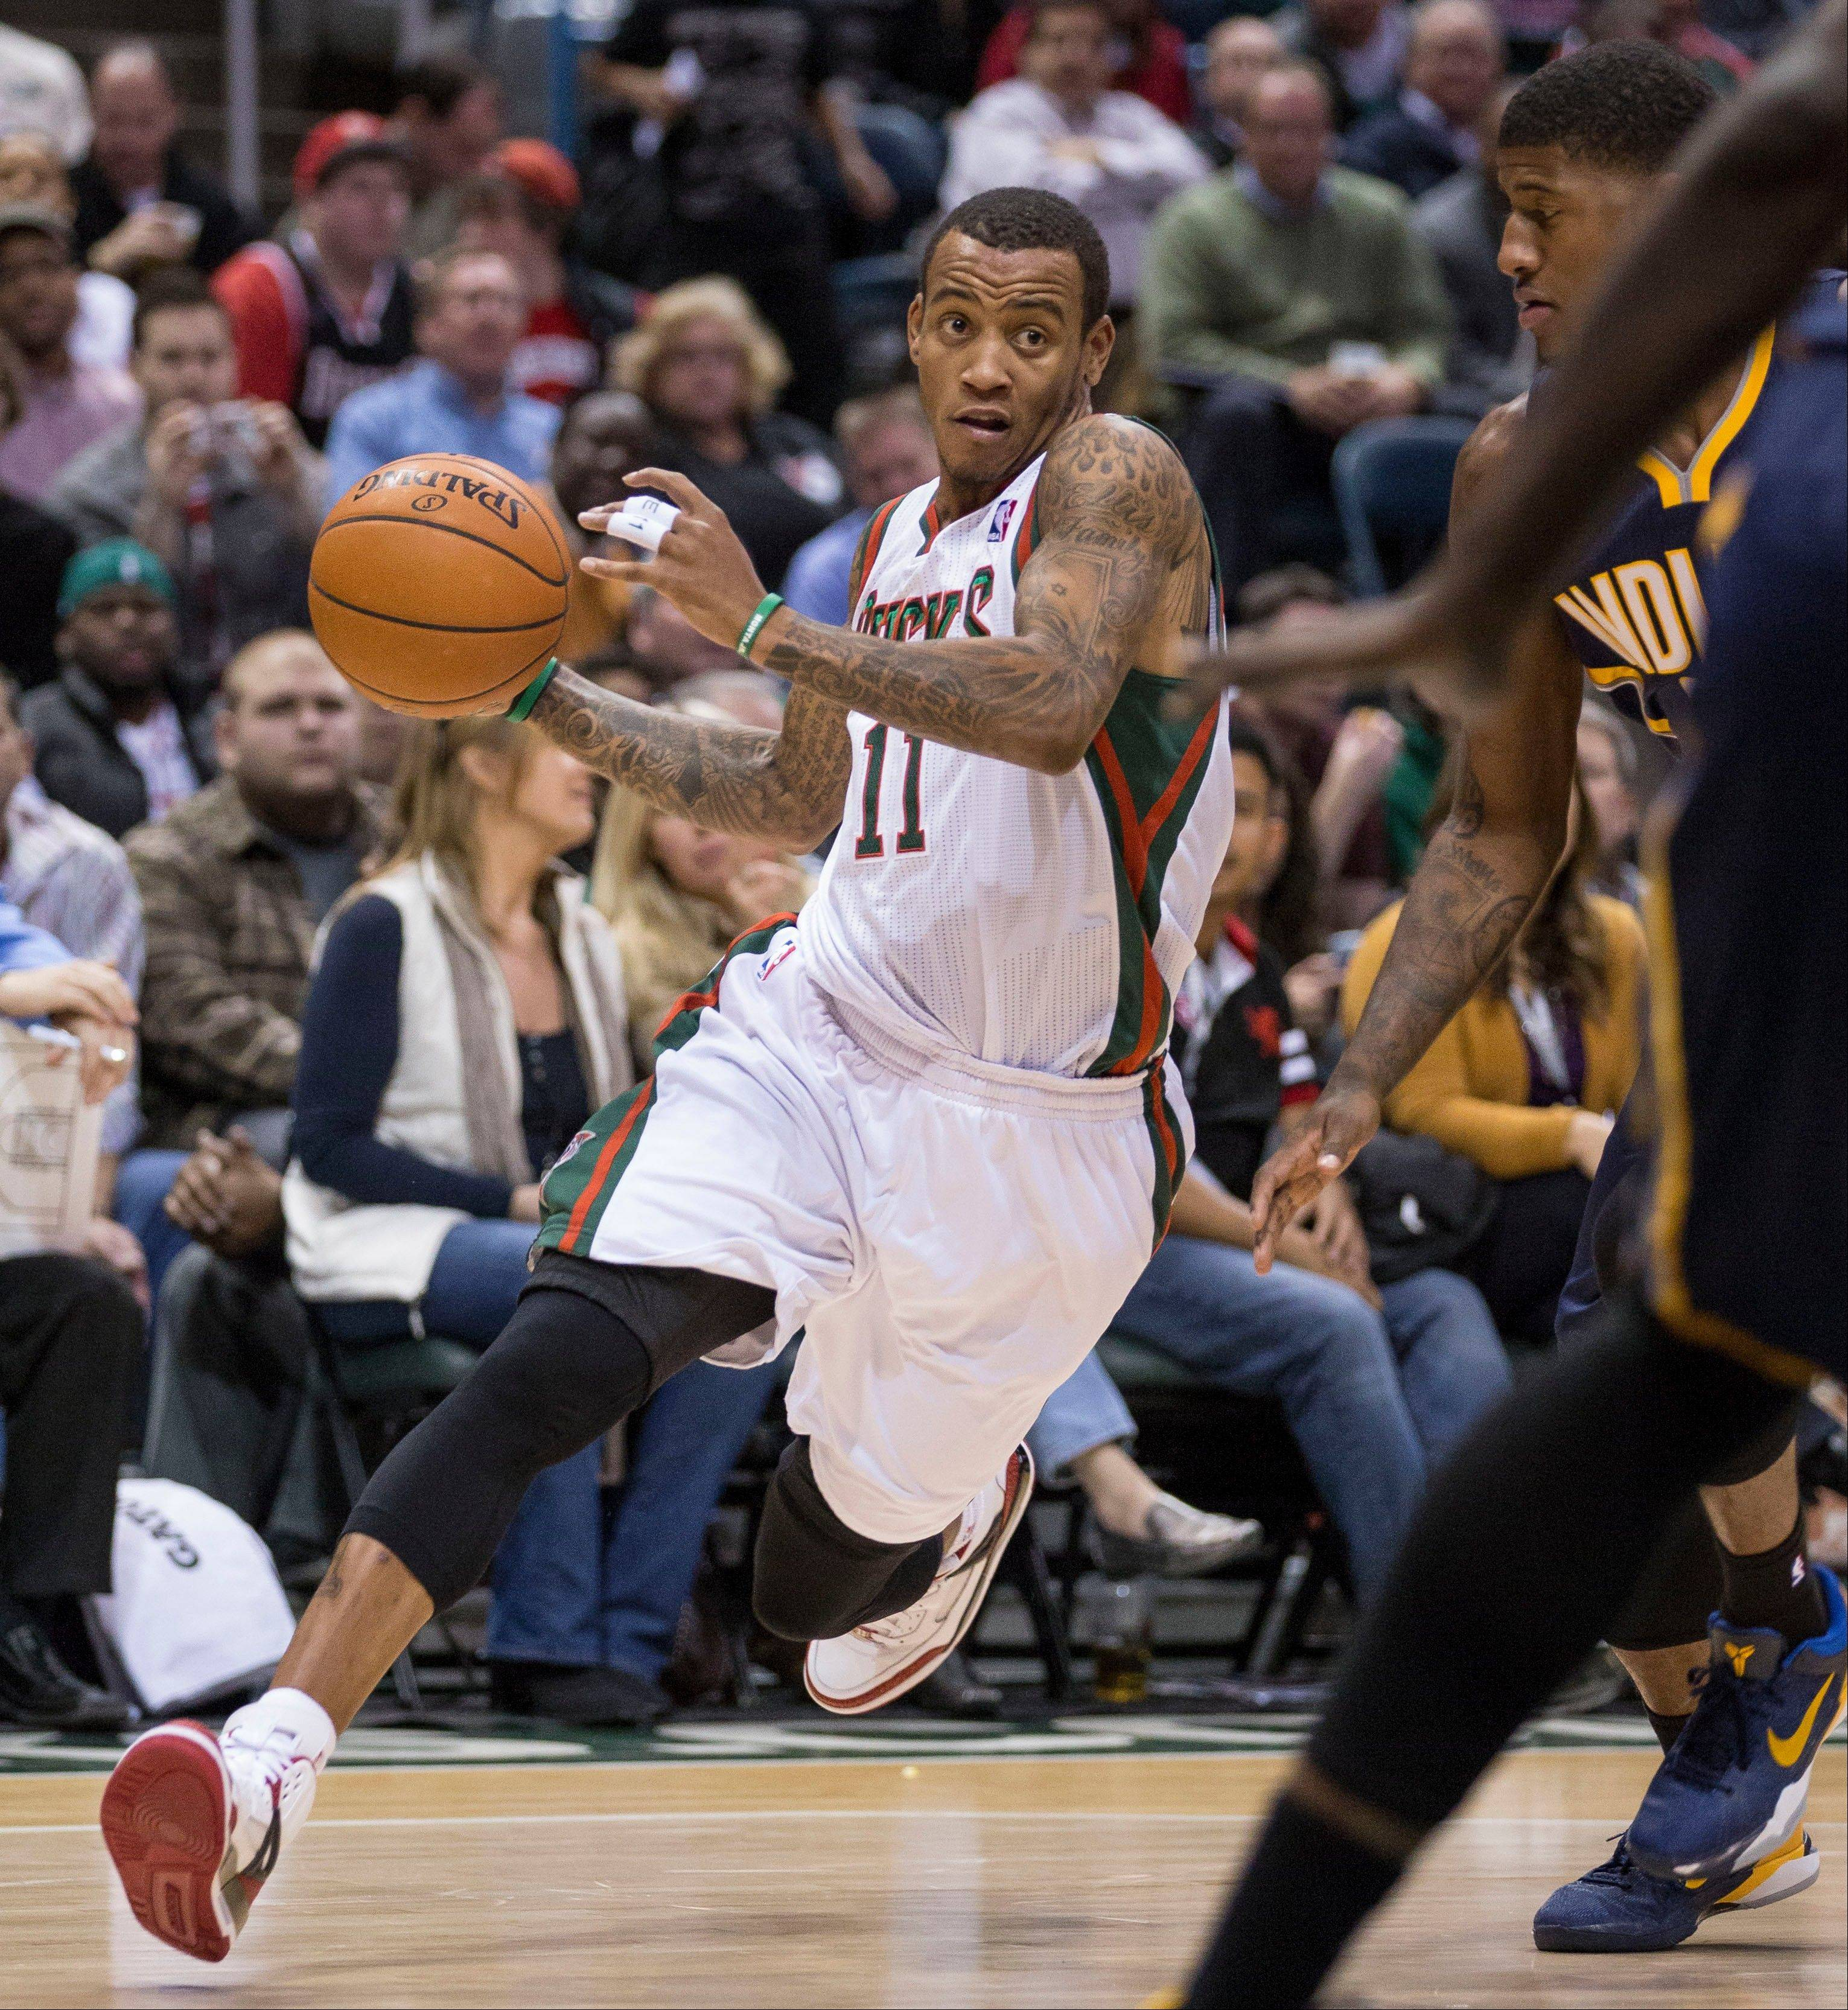 Jennings, Ellis lead Bucks past Pacers 99-85